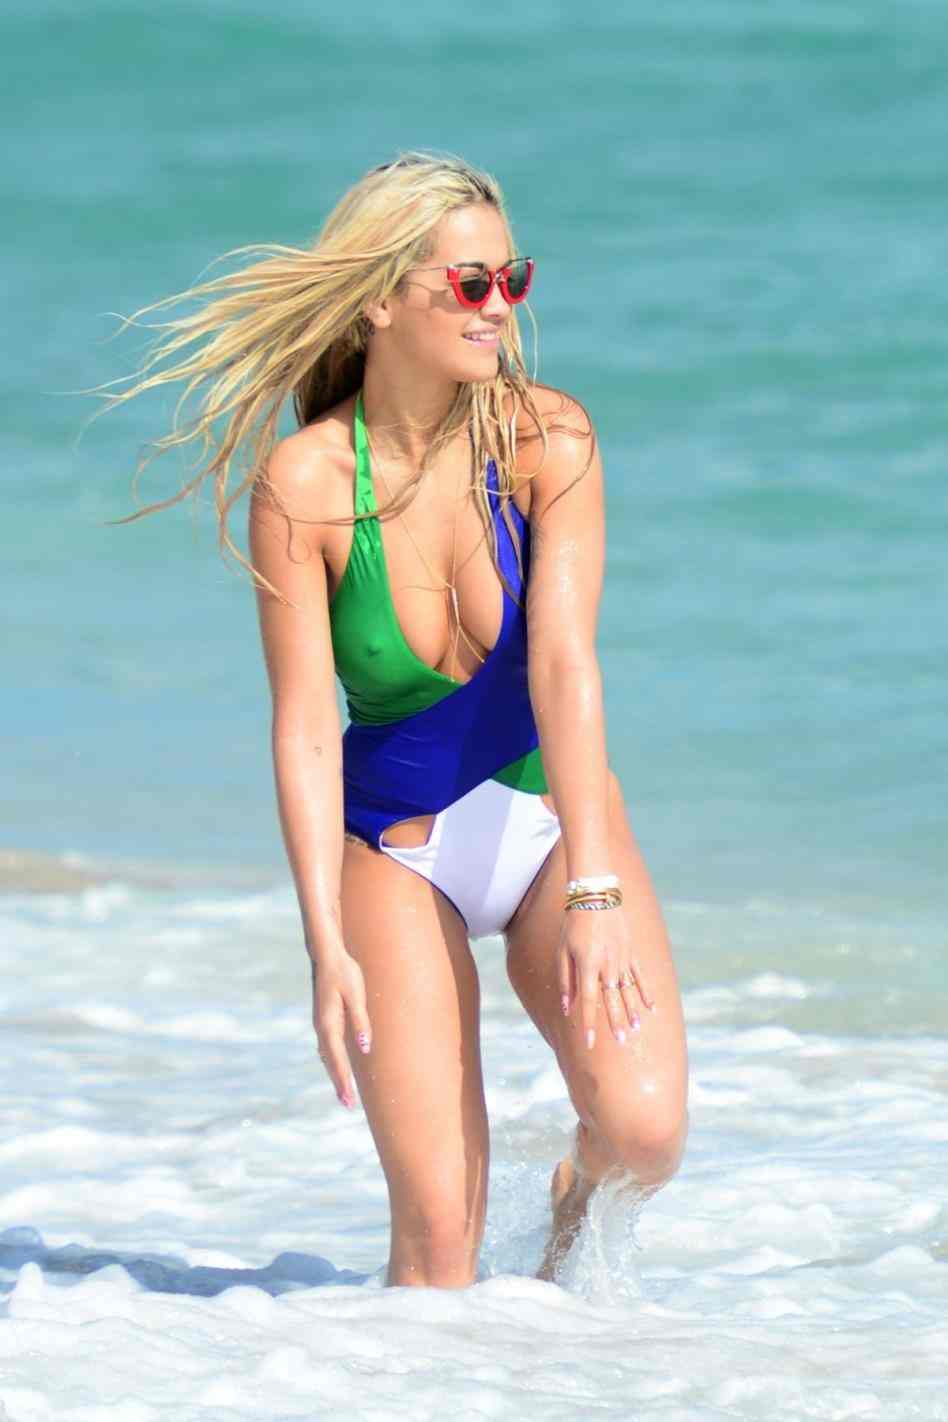 maui-rita-ora-swimsuit-miami-hawtcelebs-rita-best-beach-bodies-2015-ora-in-swimsuit-at-a-miami-hawtcelebs-cassidy-hot-bikini-part-ii-april-cassidy-best